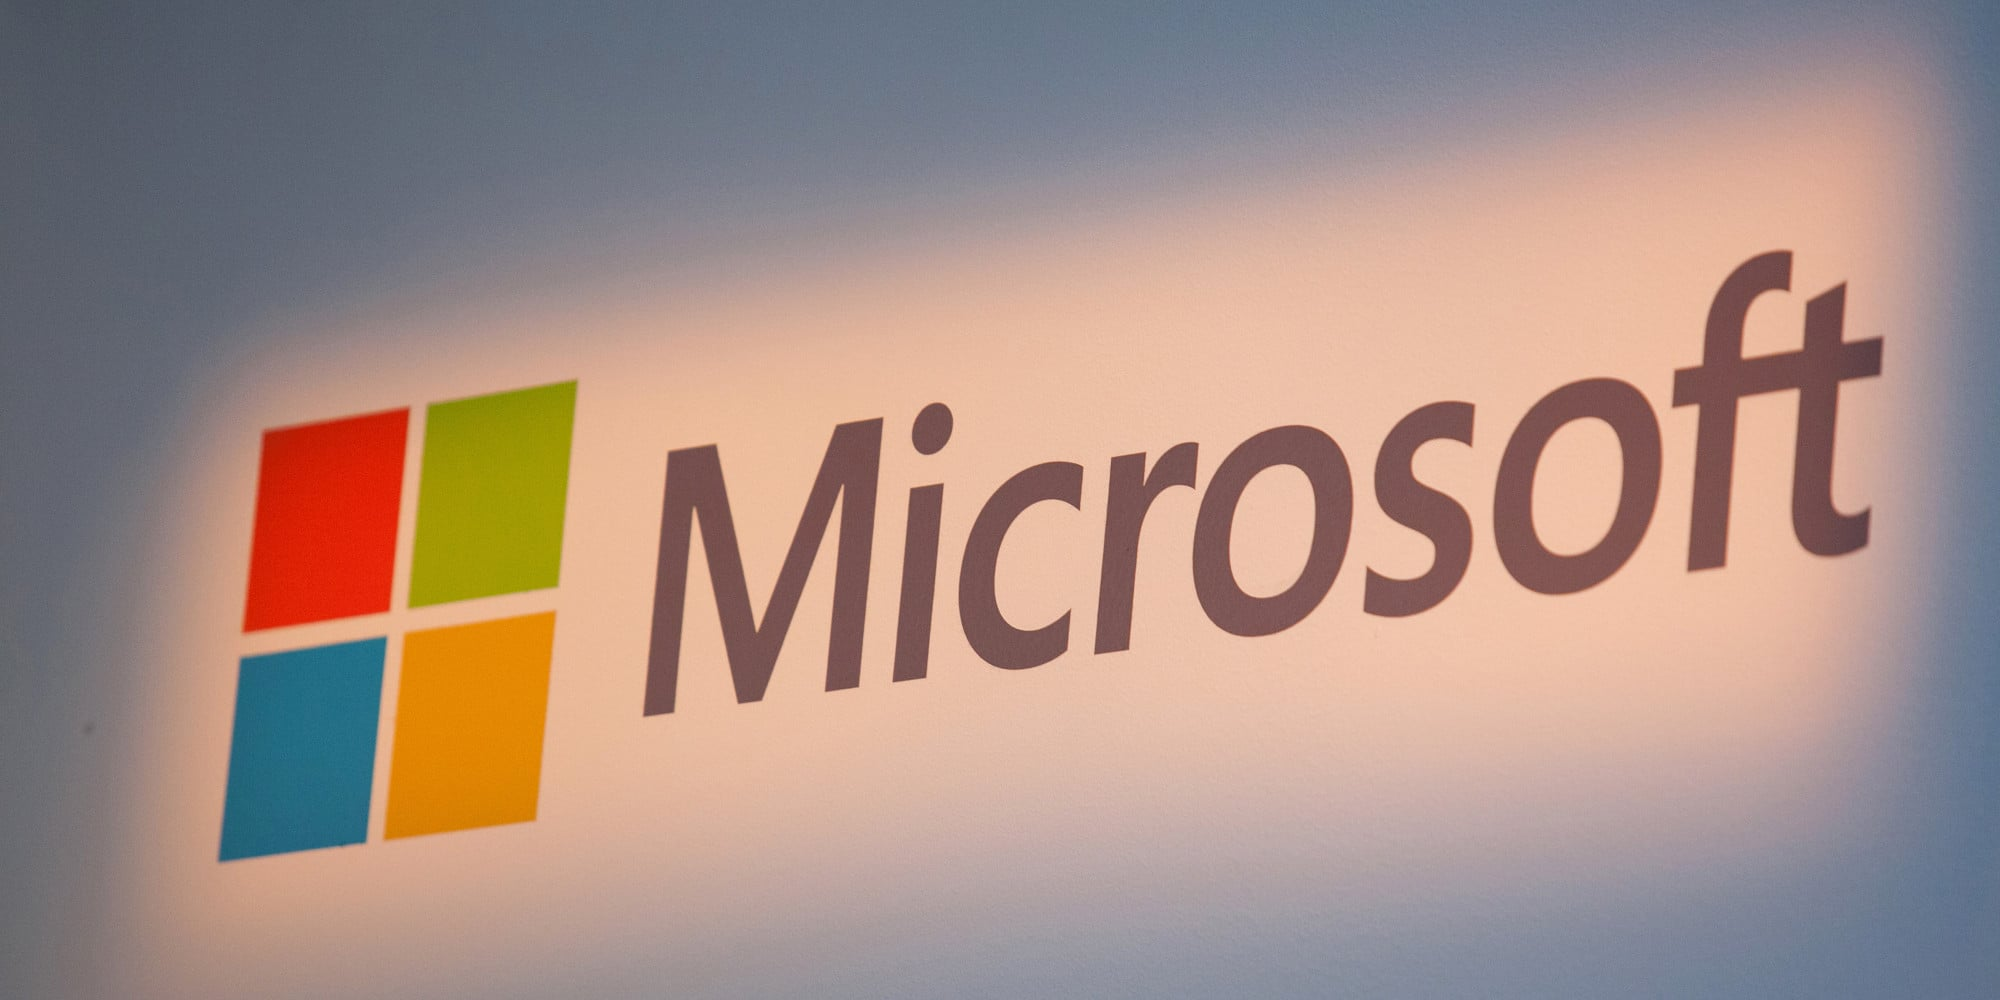 Microsoft denies us suggestion its diversity plan illegally discriminates by race. 1